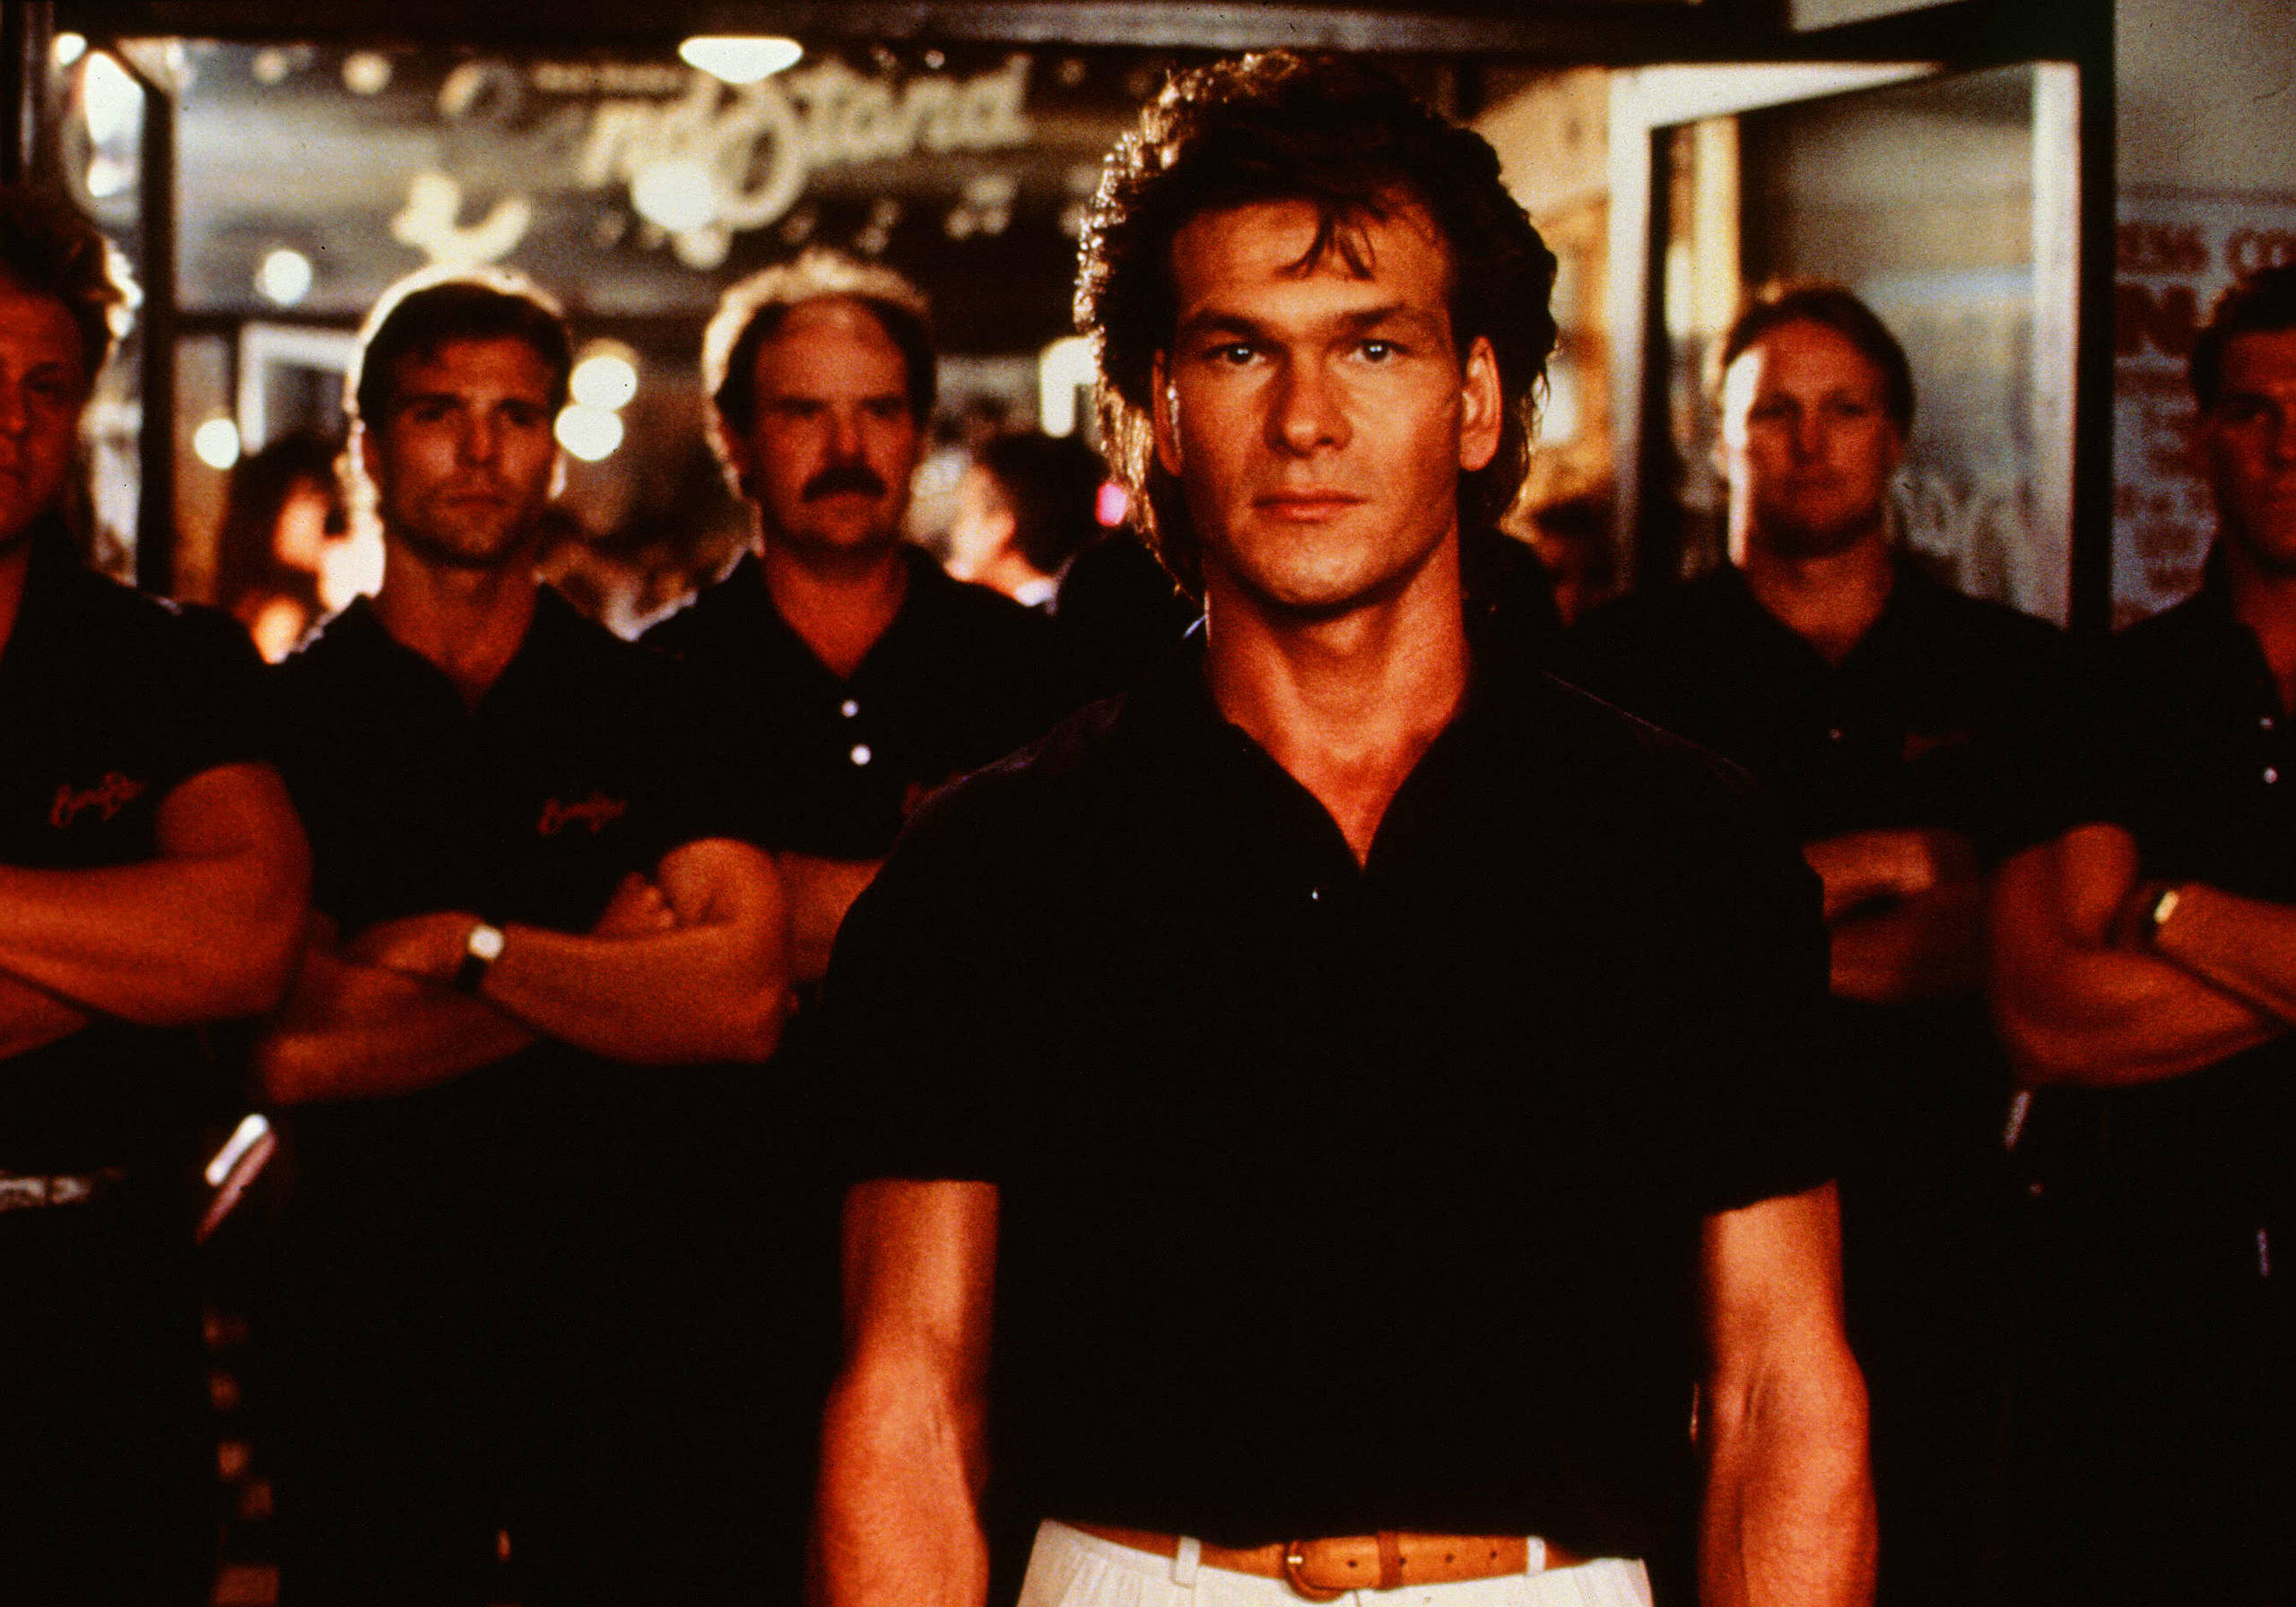 Patrick Swayze Roadhouse Quotes. QuotesGram